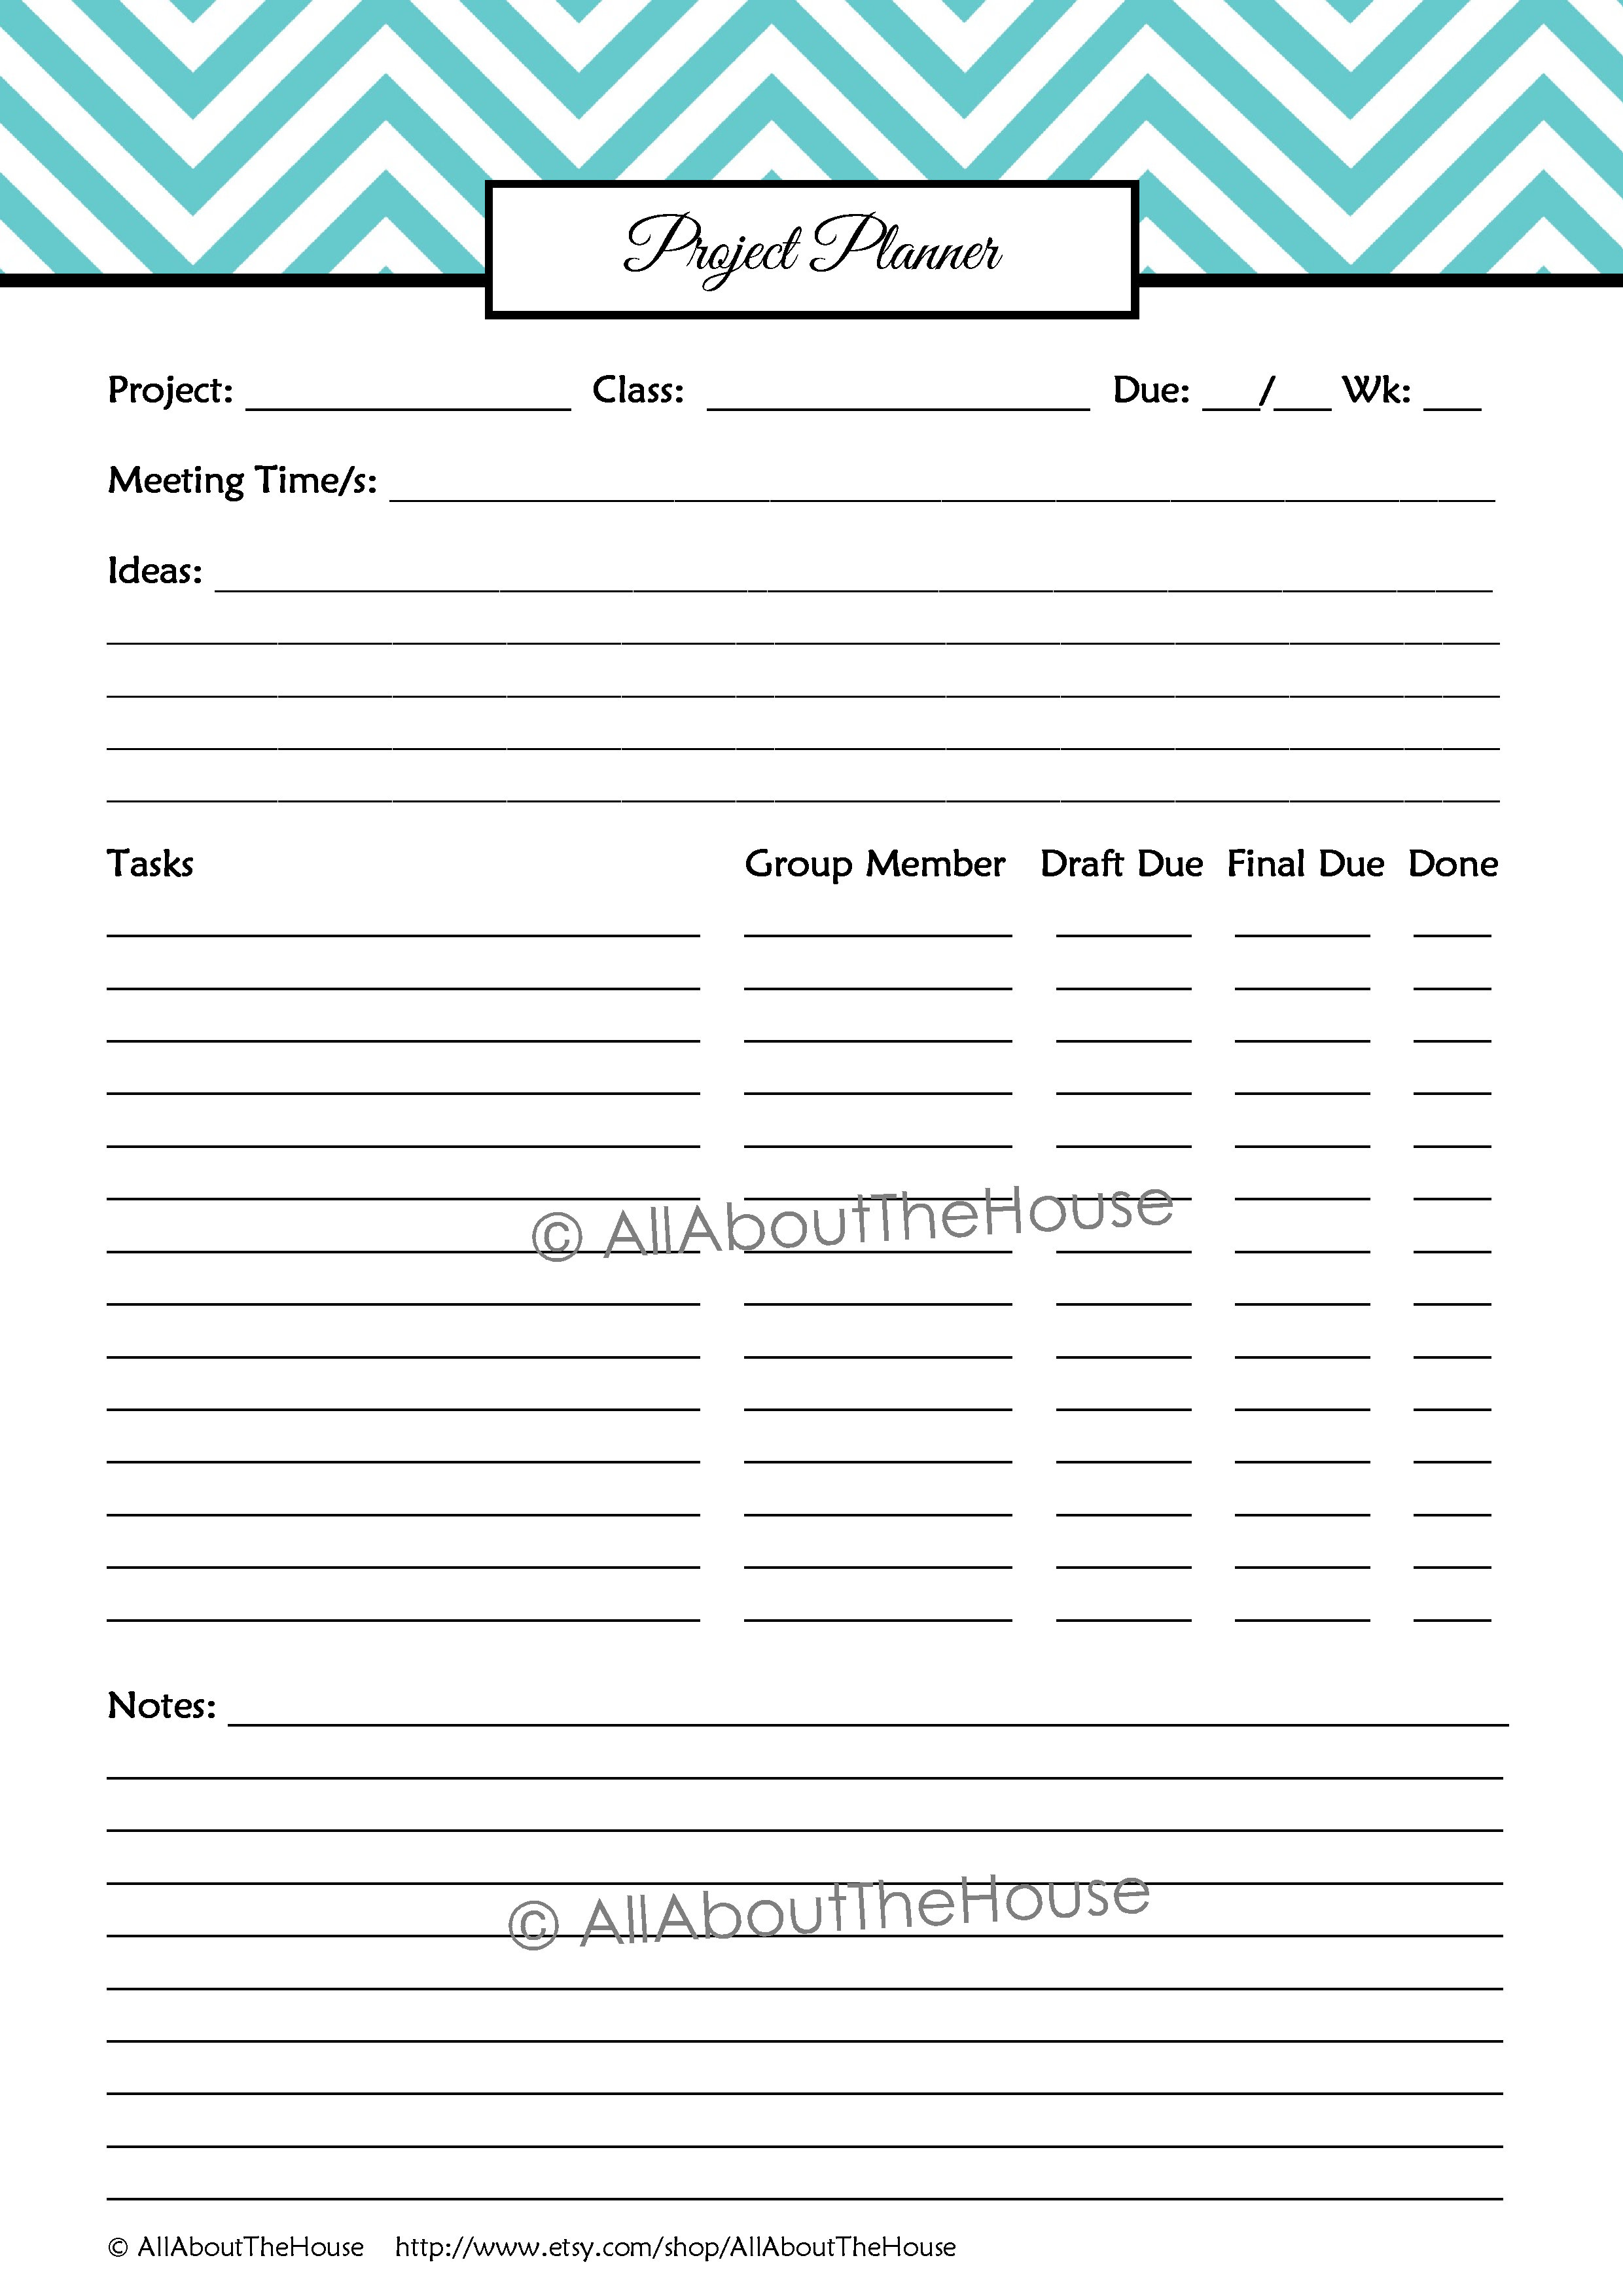 Student Planner – Editable | AllAboutTheHouse Printables